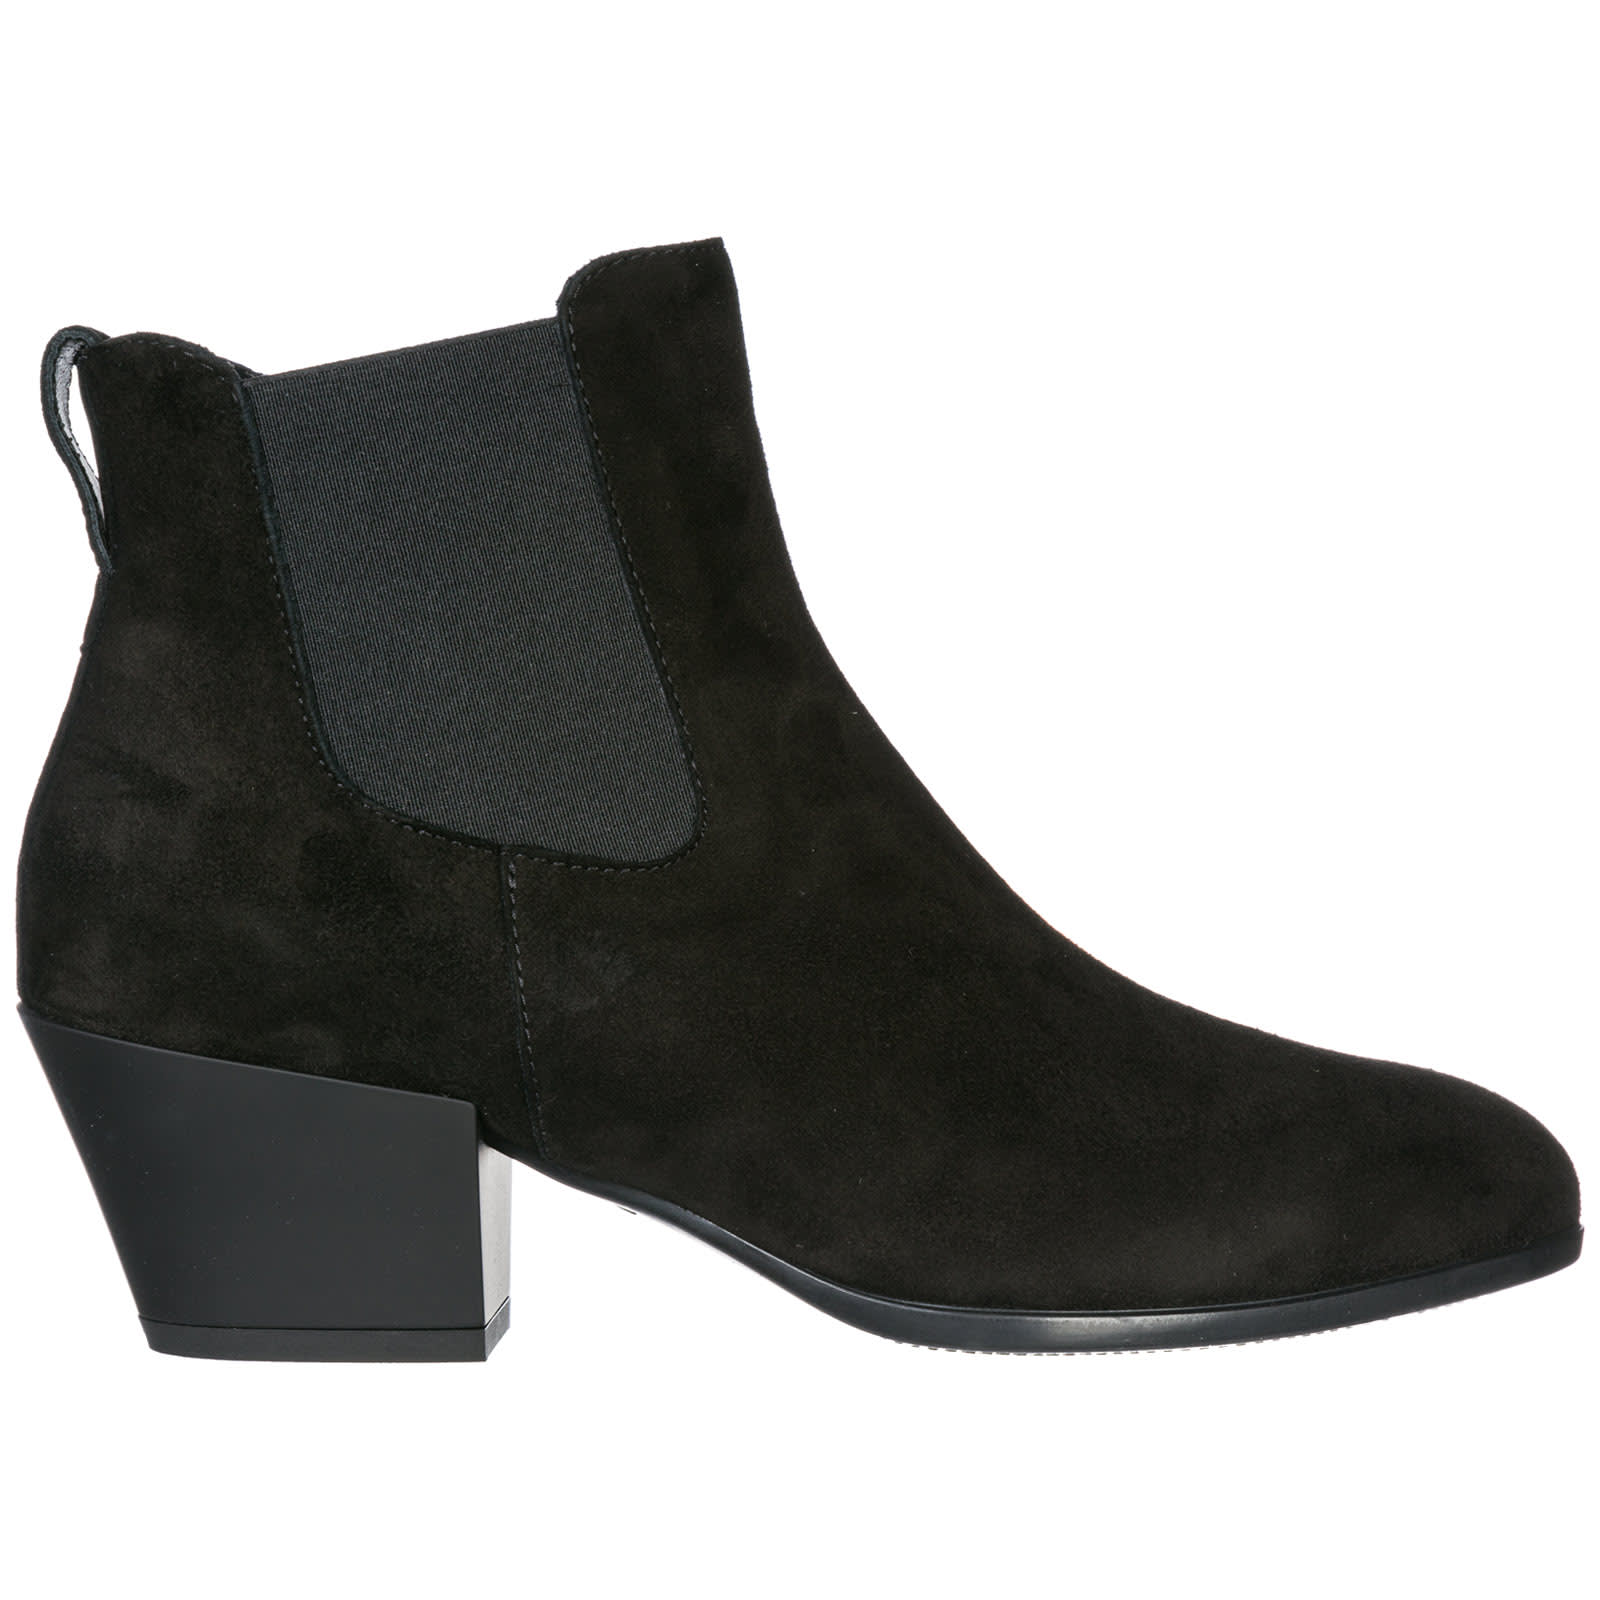 Hogan H401 Heeled Ankle Boots